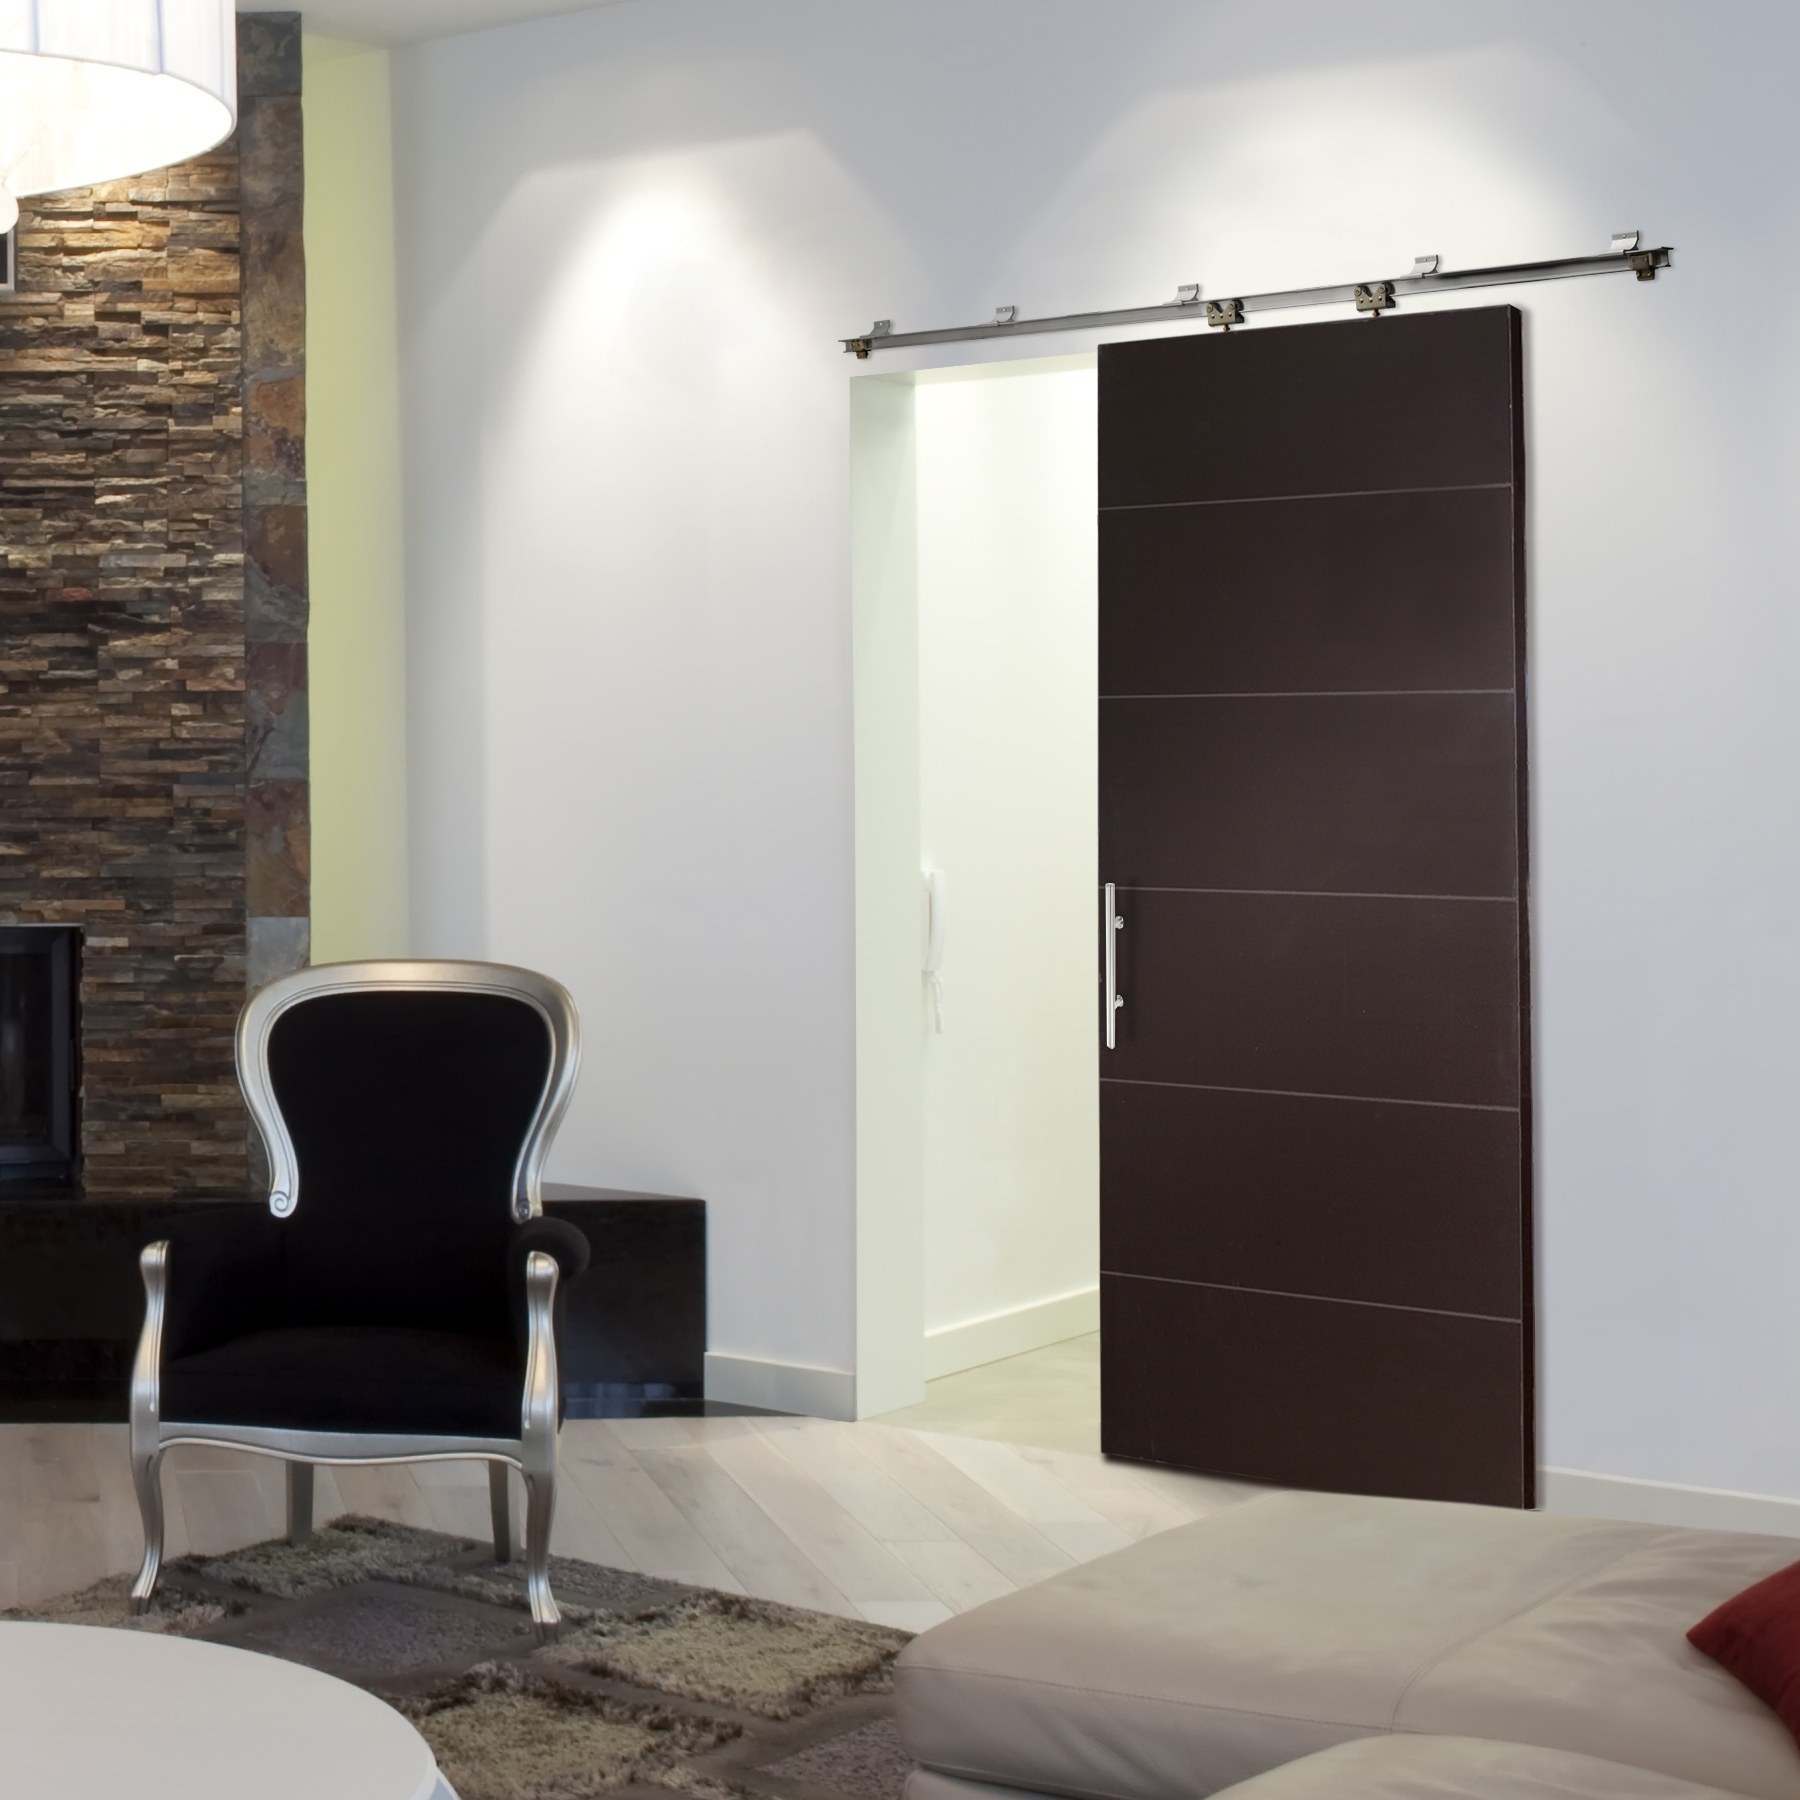 Wall Mount Sliding Door For Bathroomimages of modern sliding barn doors sliding door hardware